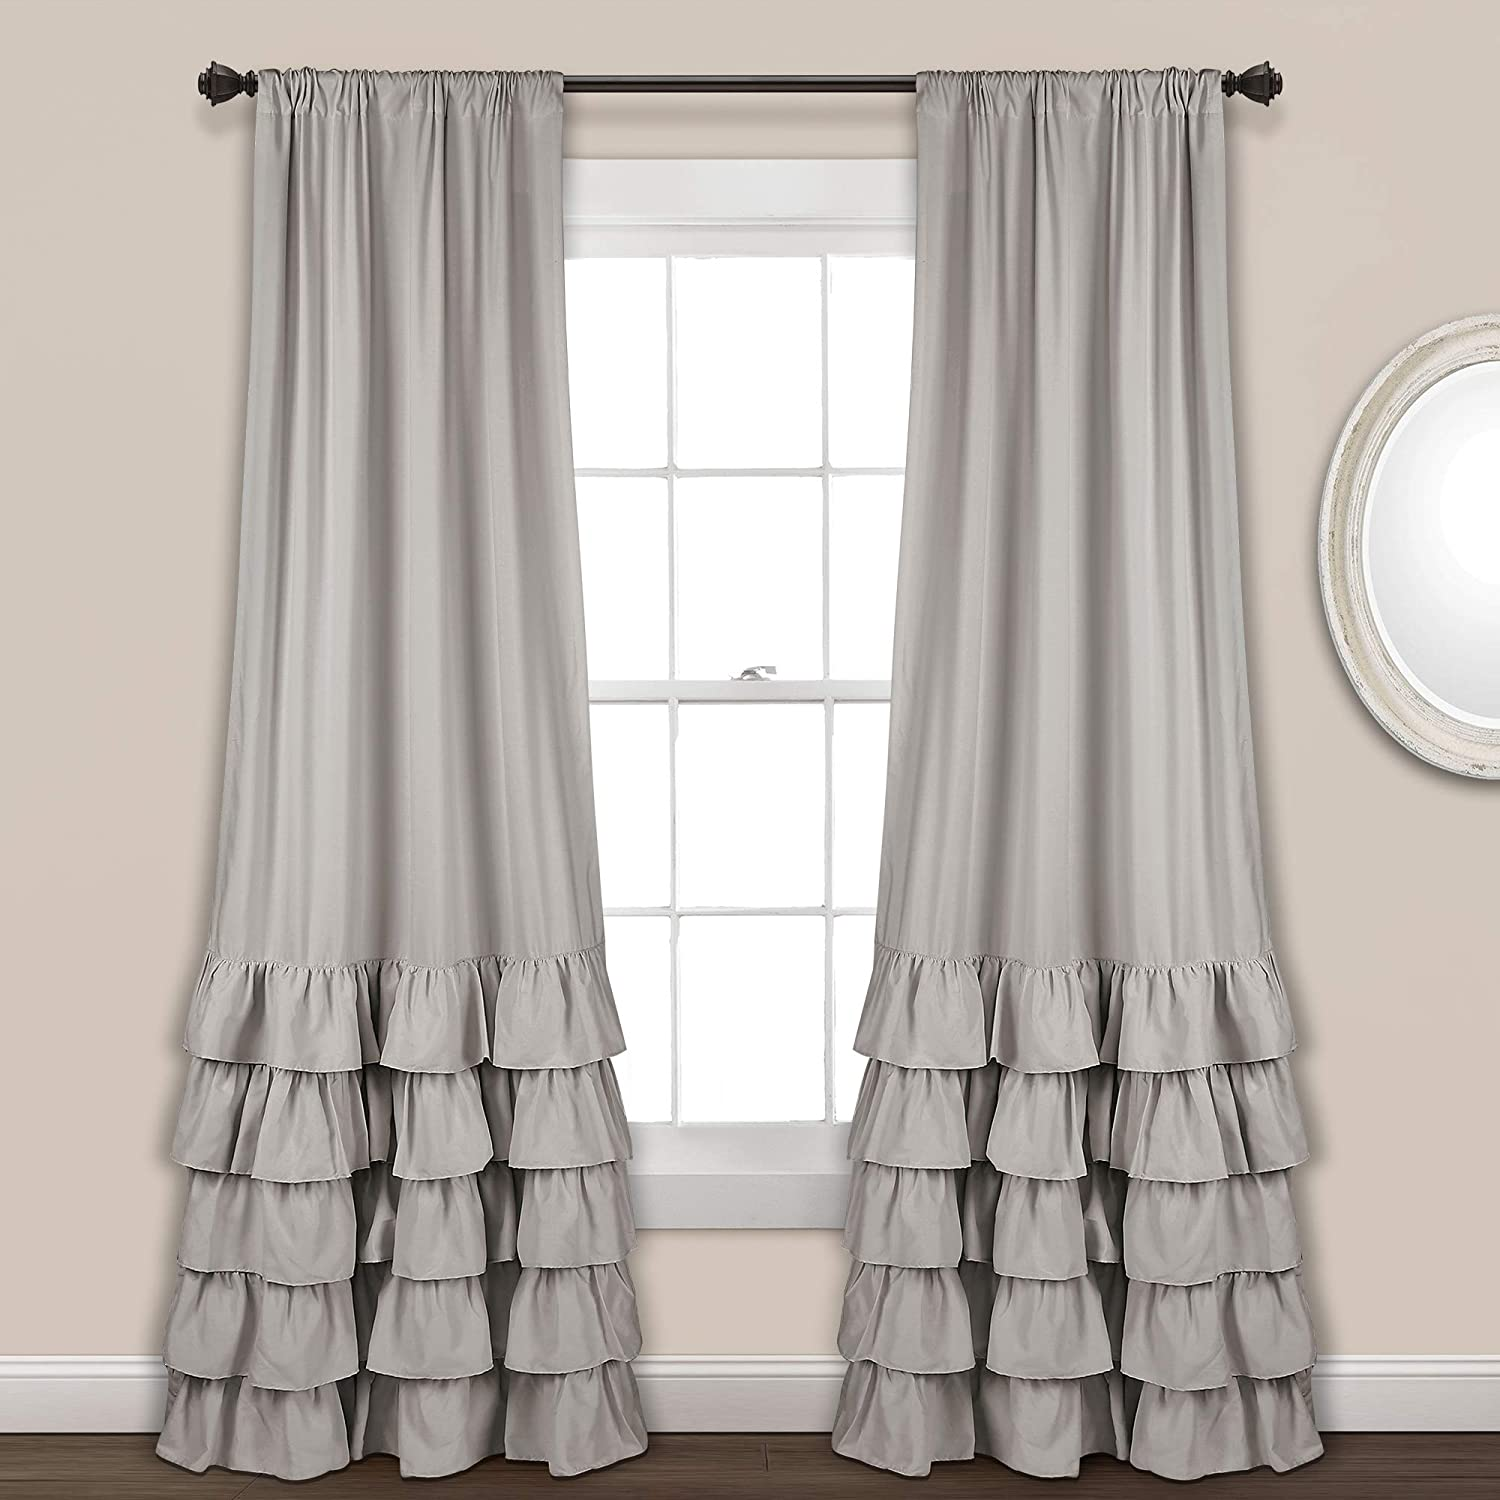 "Lush Decor Allison Ruffle Curtains Window Panel Drapes Set for Living, Dining Room, Bedroom (Pair), 84"" x 40"", Light Gray"